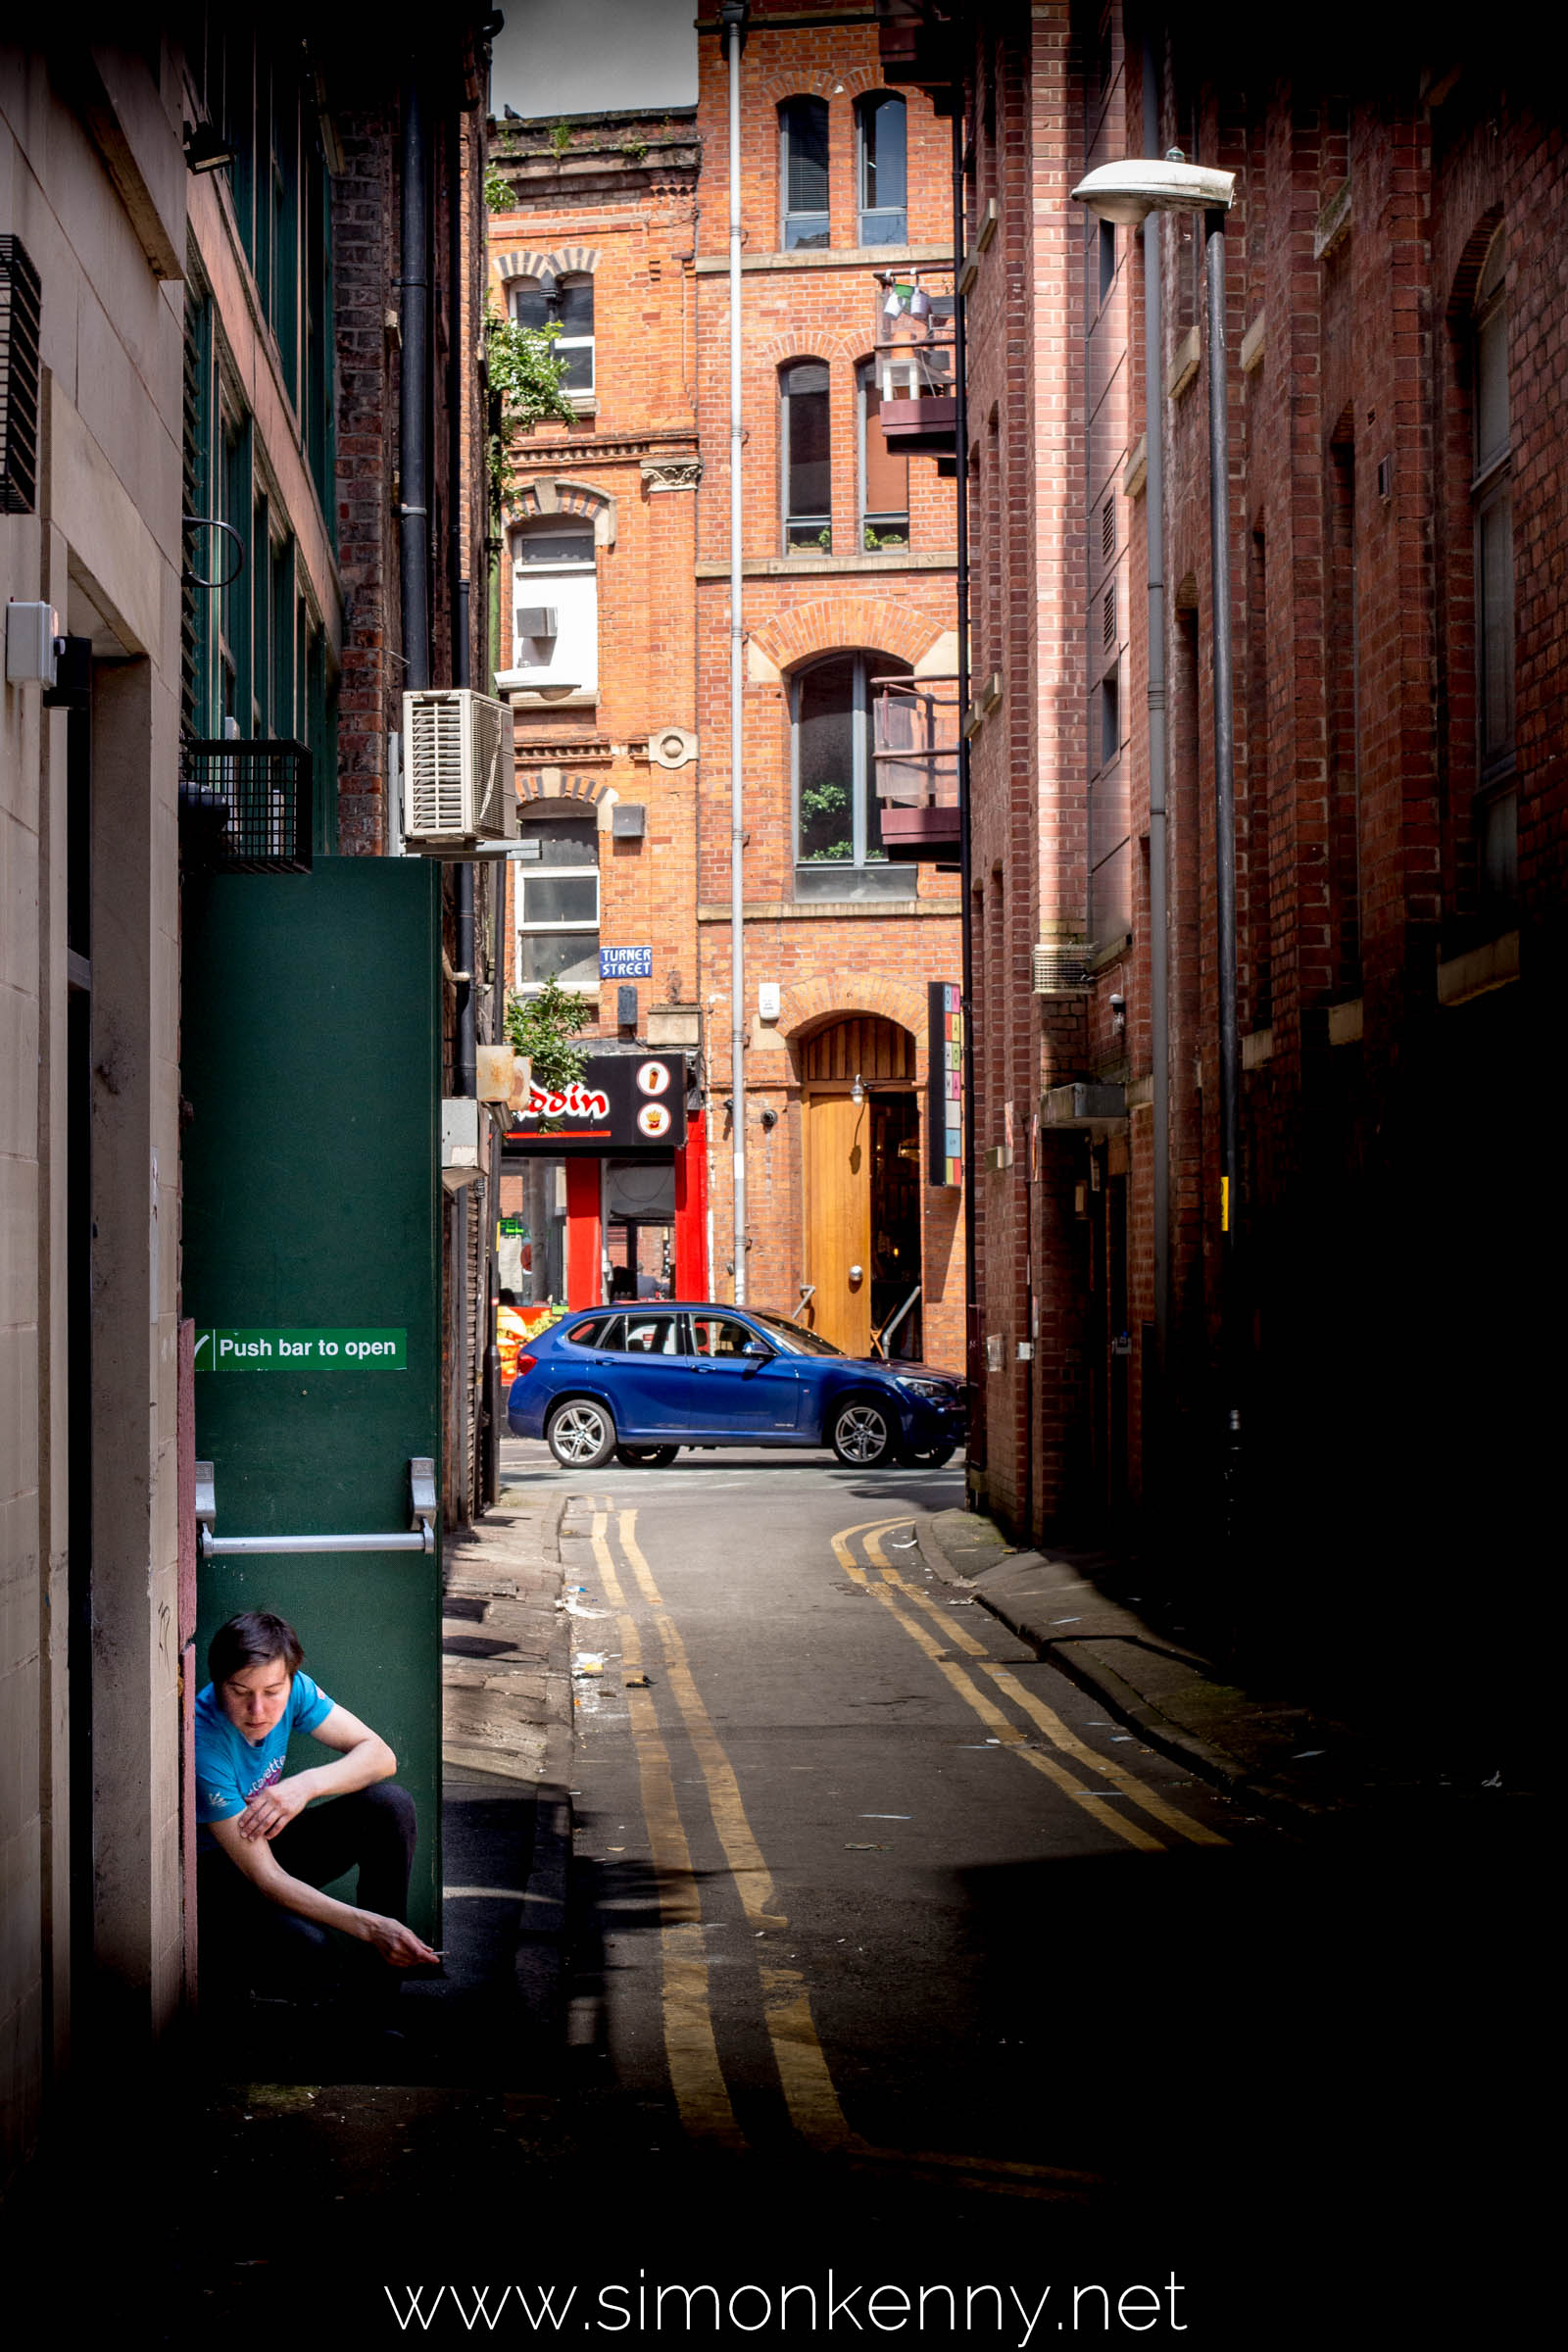 Back Street in Manchester